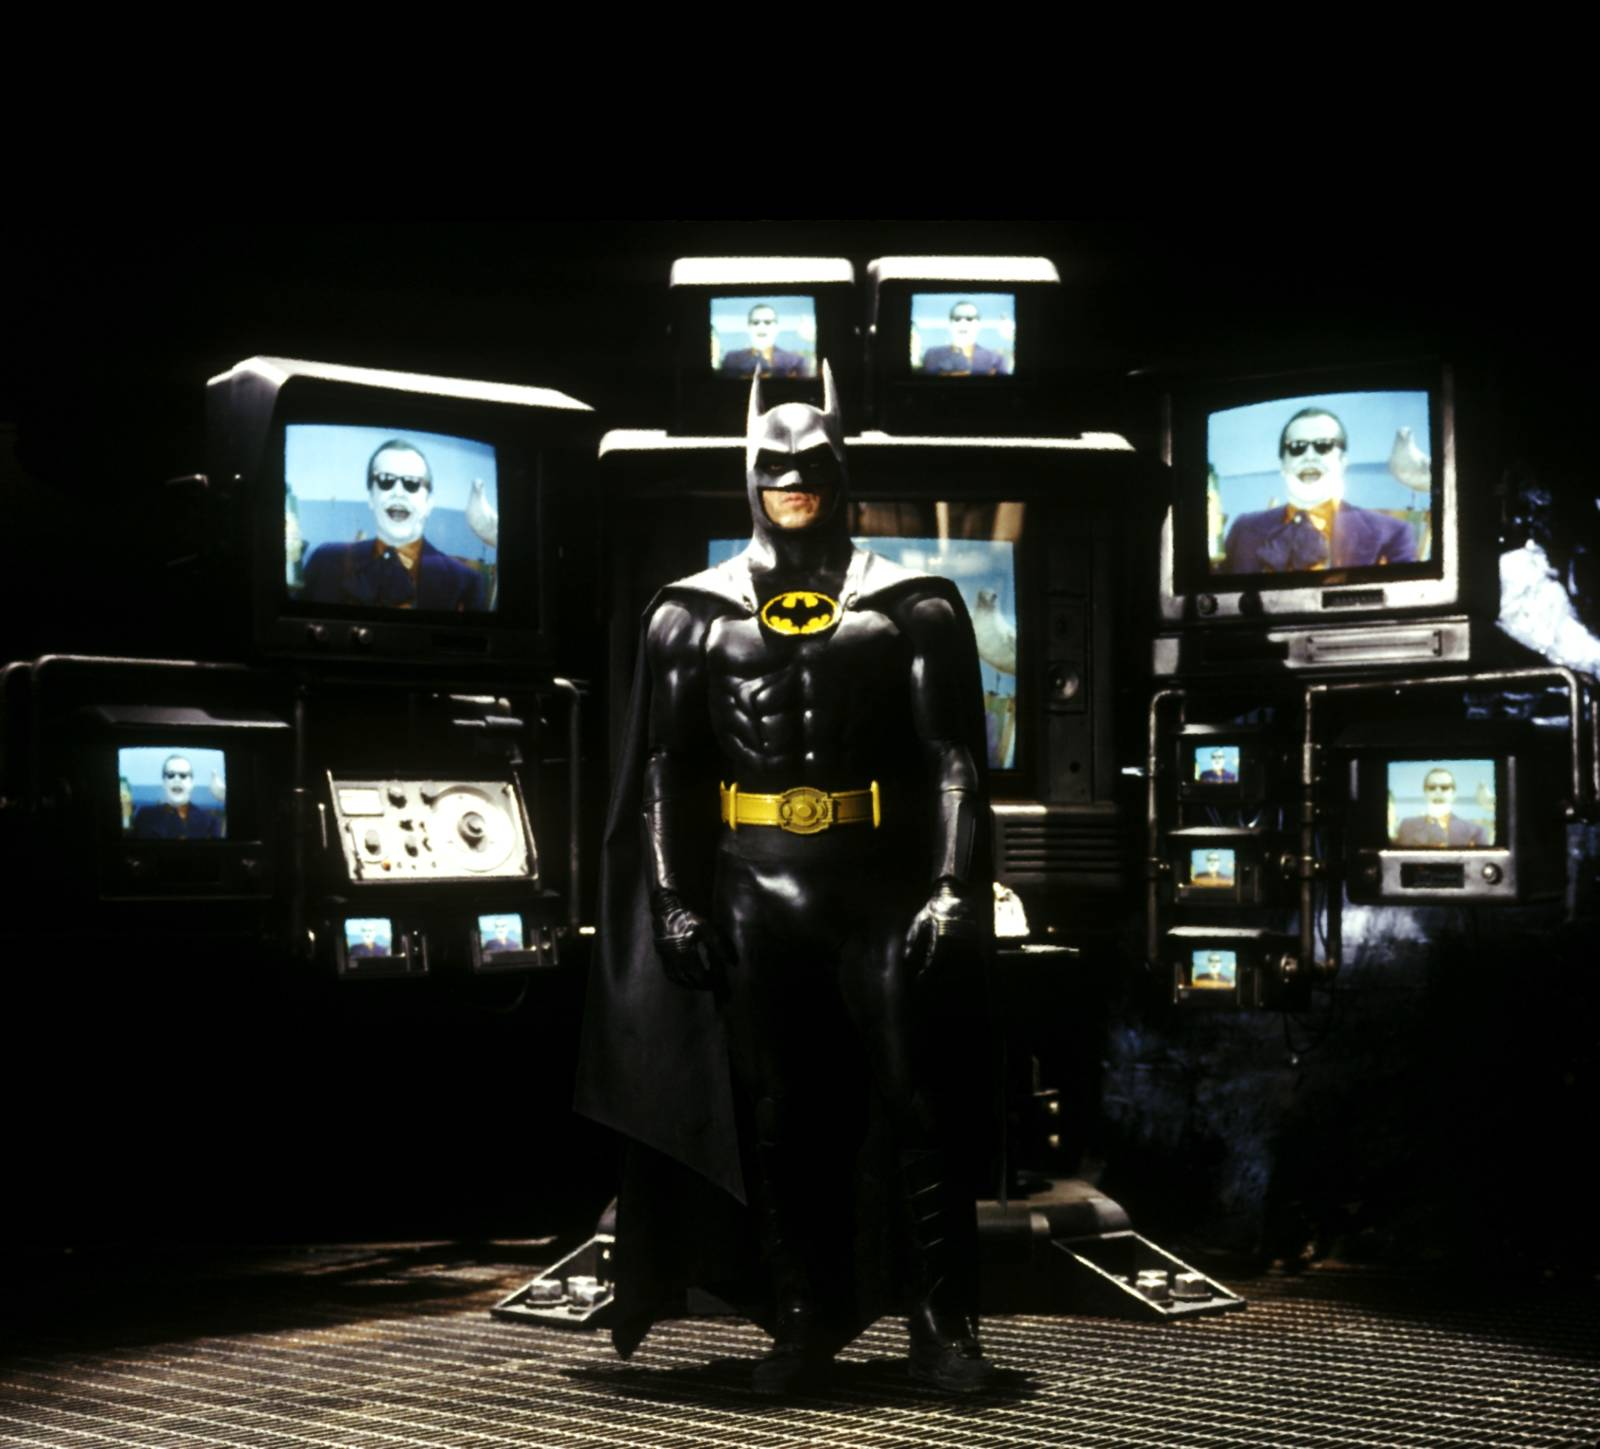 Warner Bros. Pictures Presents: Batman (1989) Live in Concert - Live-To-Picture Concert Events